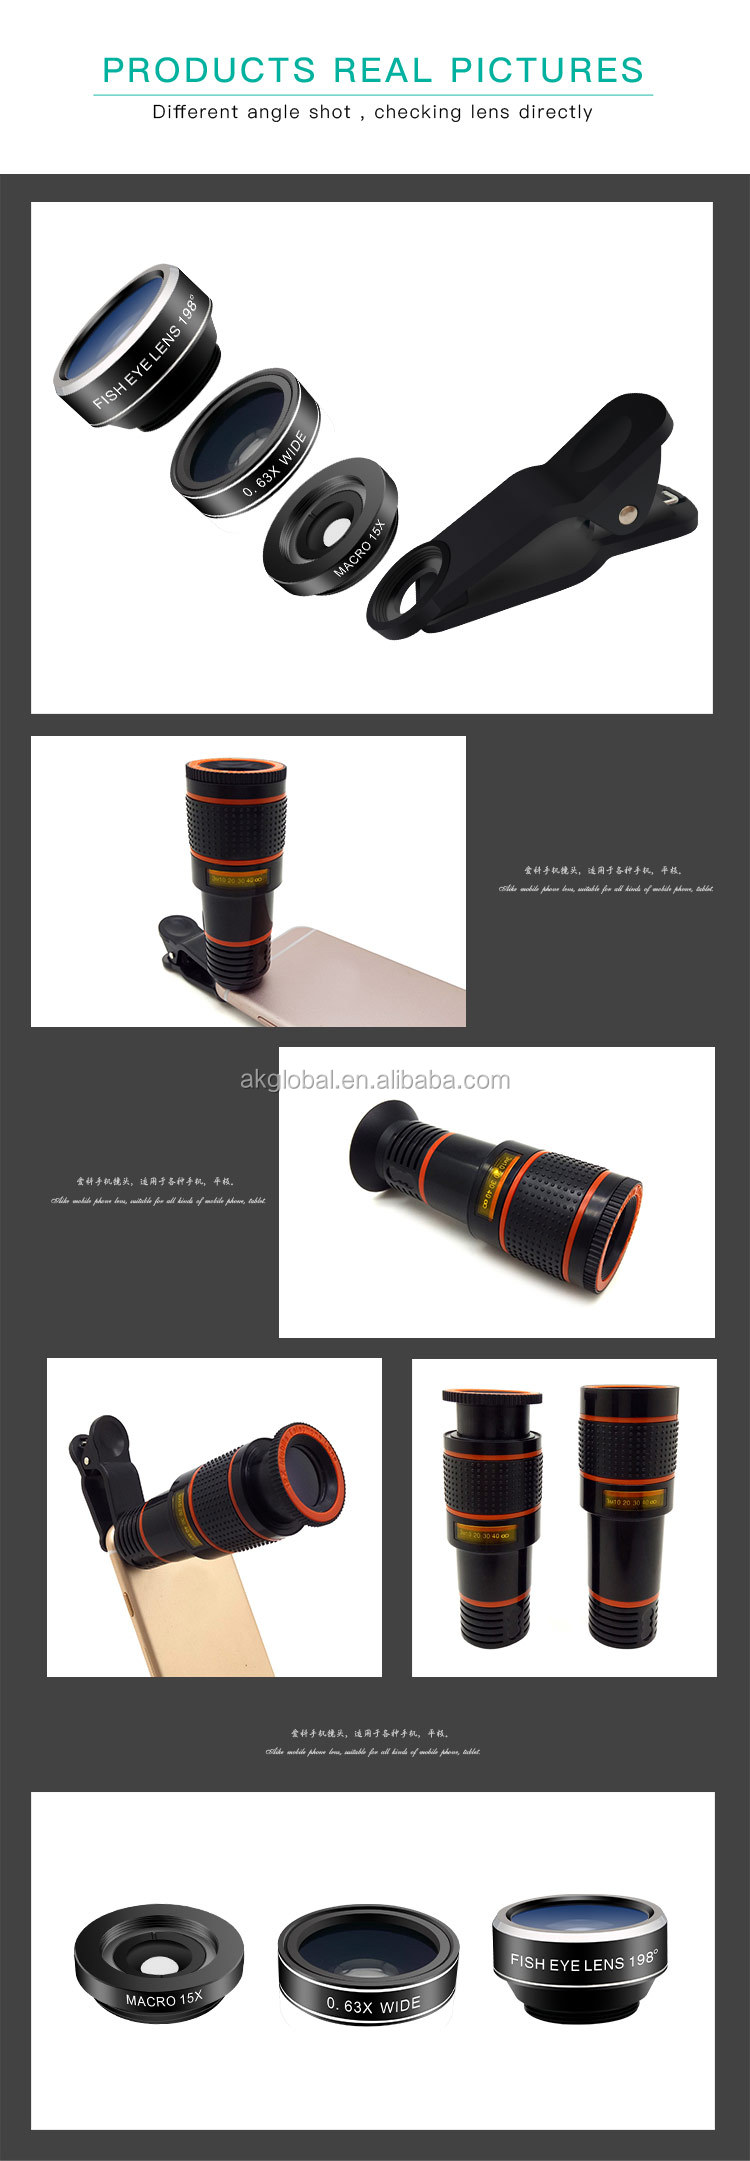 factory wholesale telephoto zoom lens wide angle macro fisheye 4 in 1 mobile phone camera lens for iphone cell phone